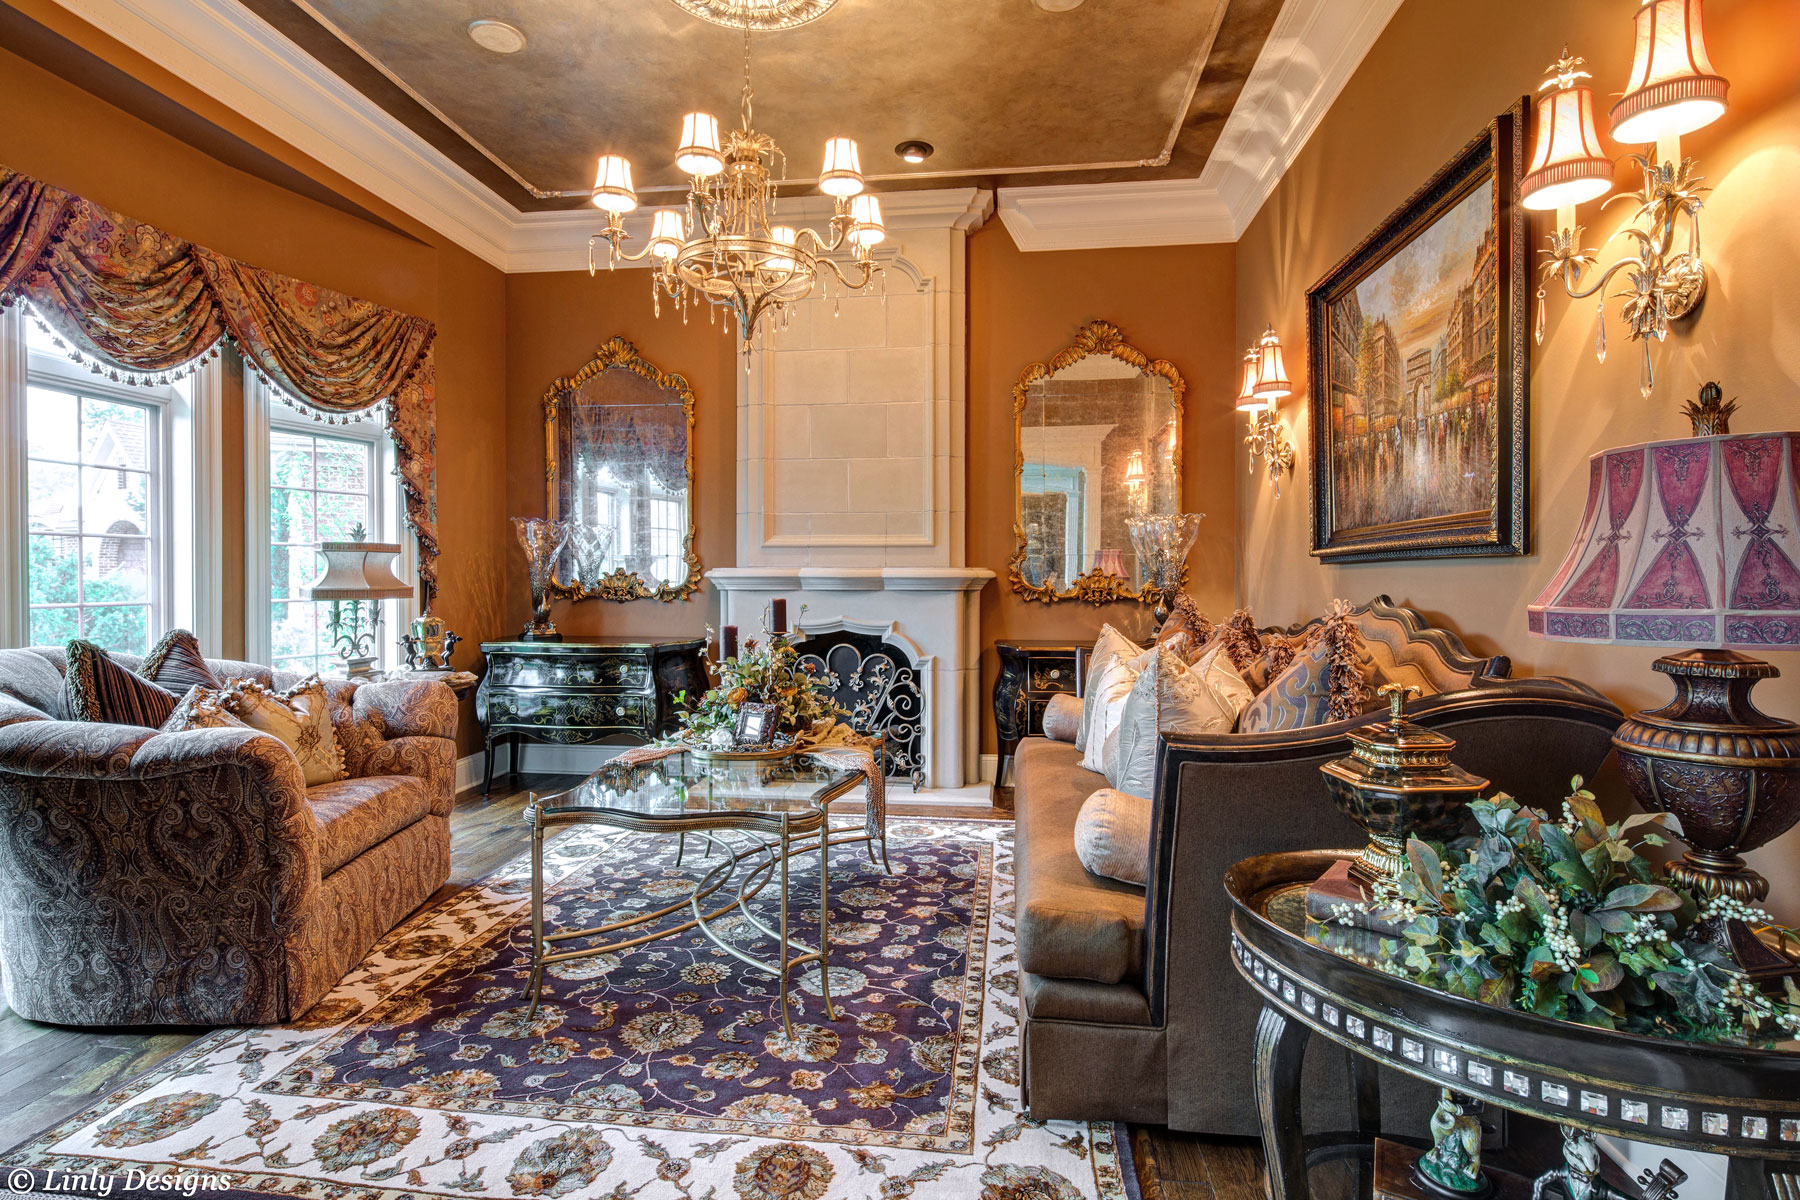 Living Room and Family Room Design – Linly Designs